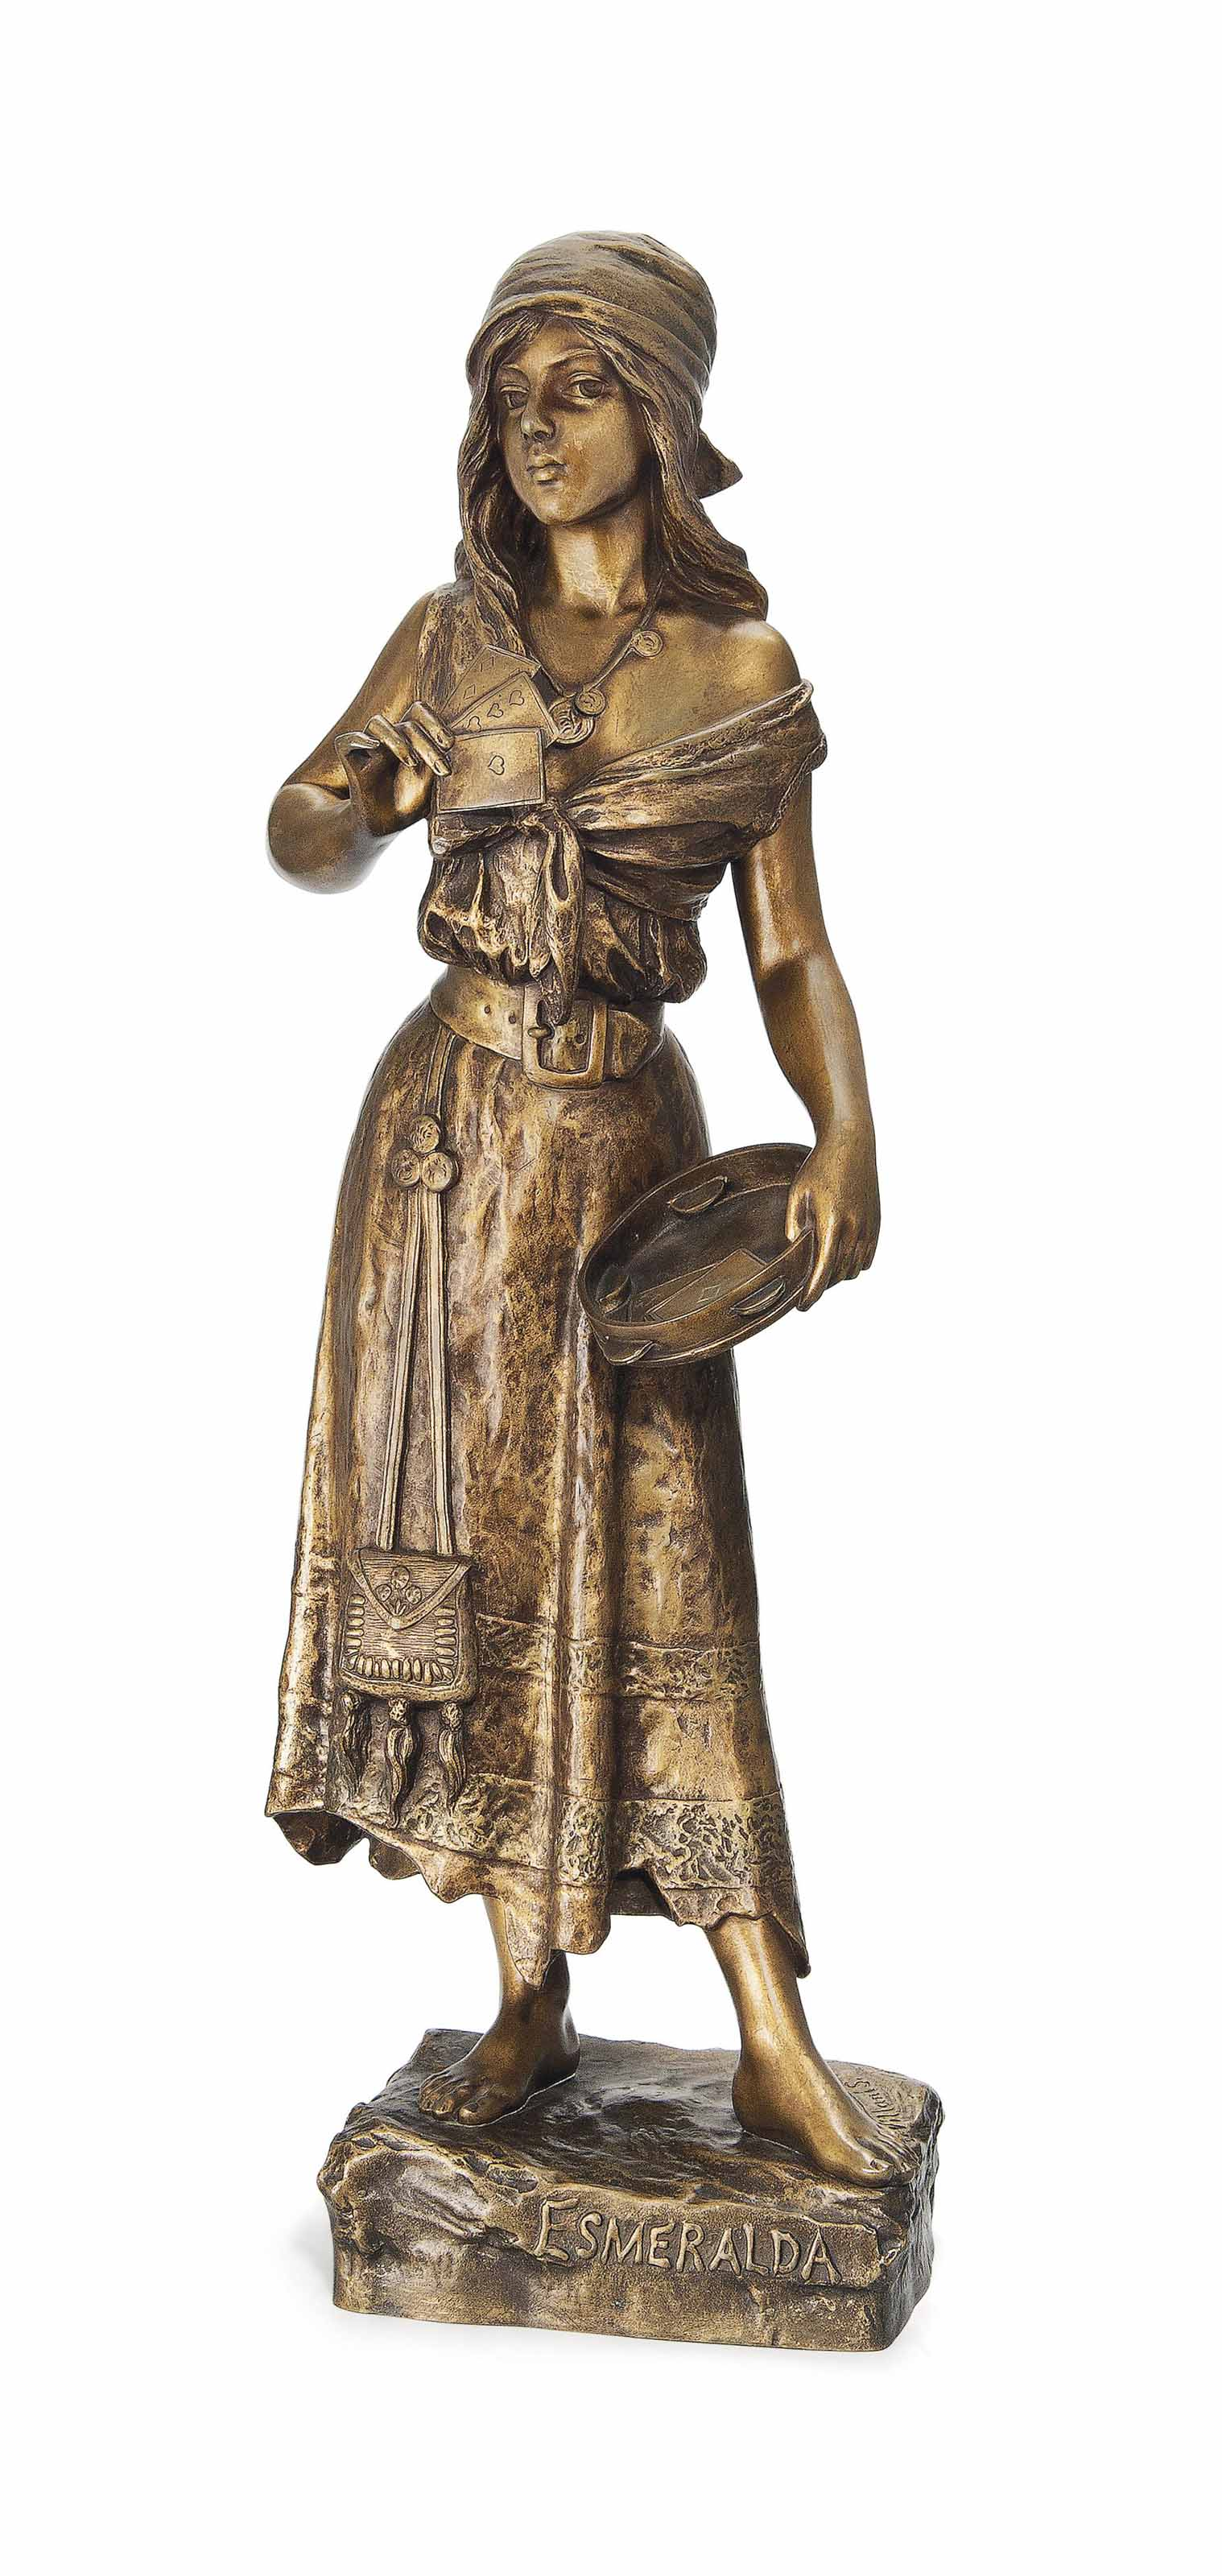 A FRENCH BRONZE FIGURE ENTITLED 'ESMERALDA'